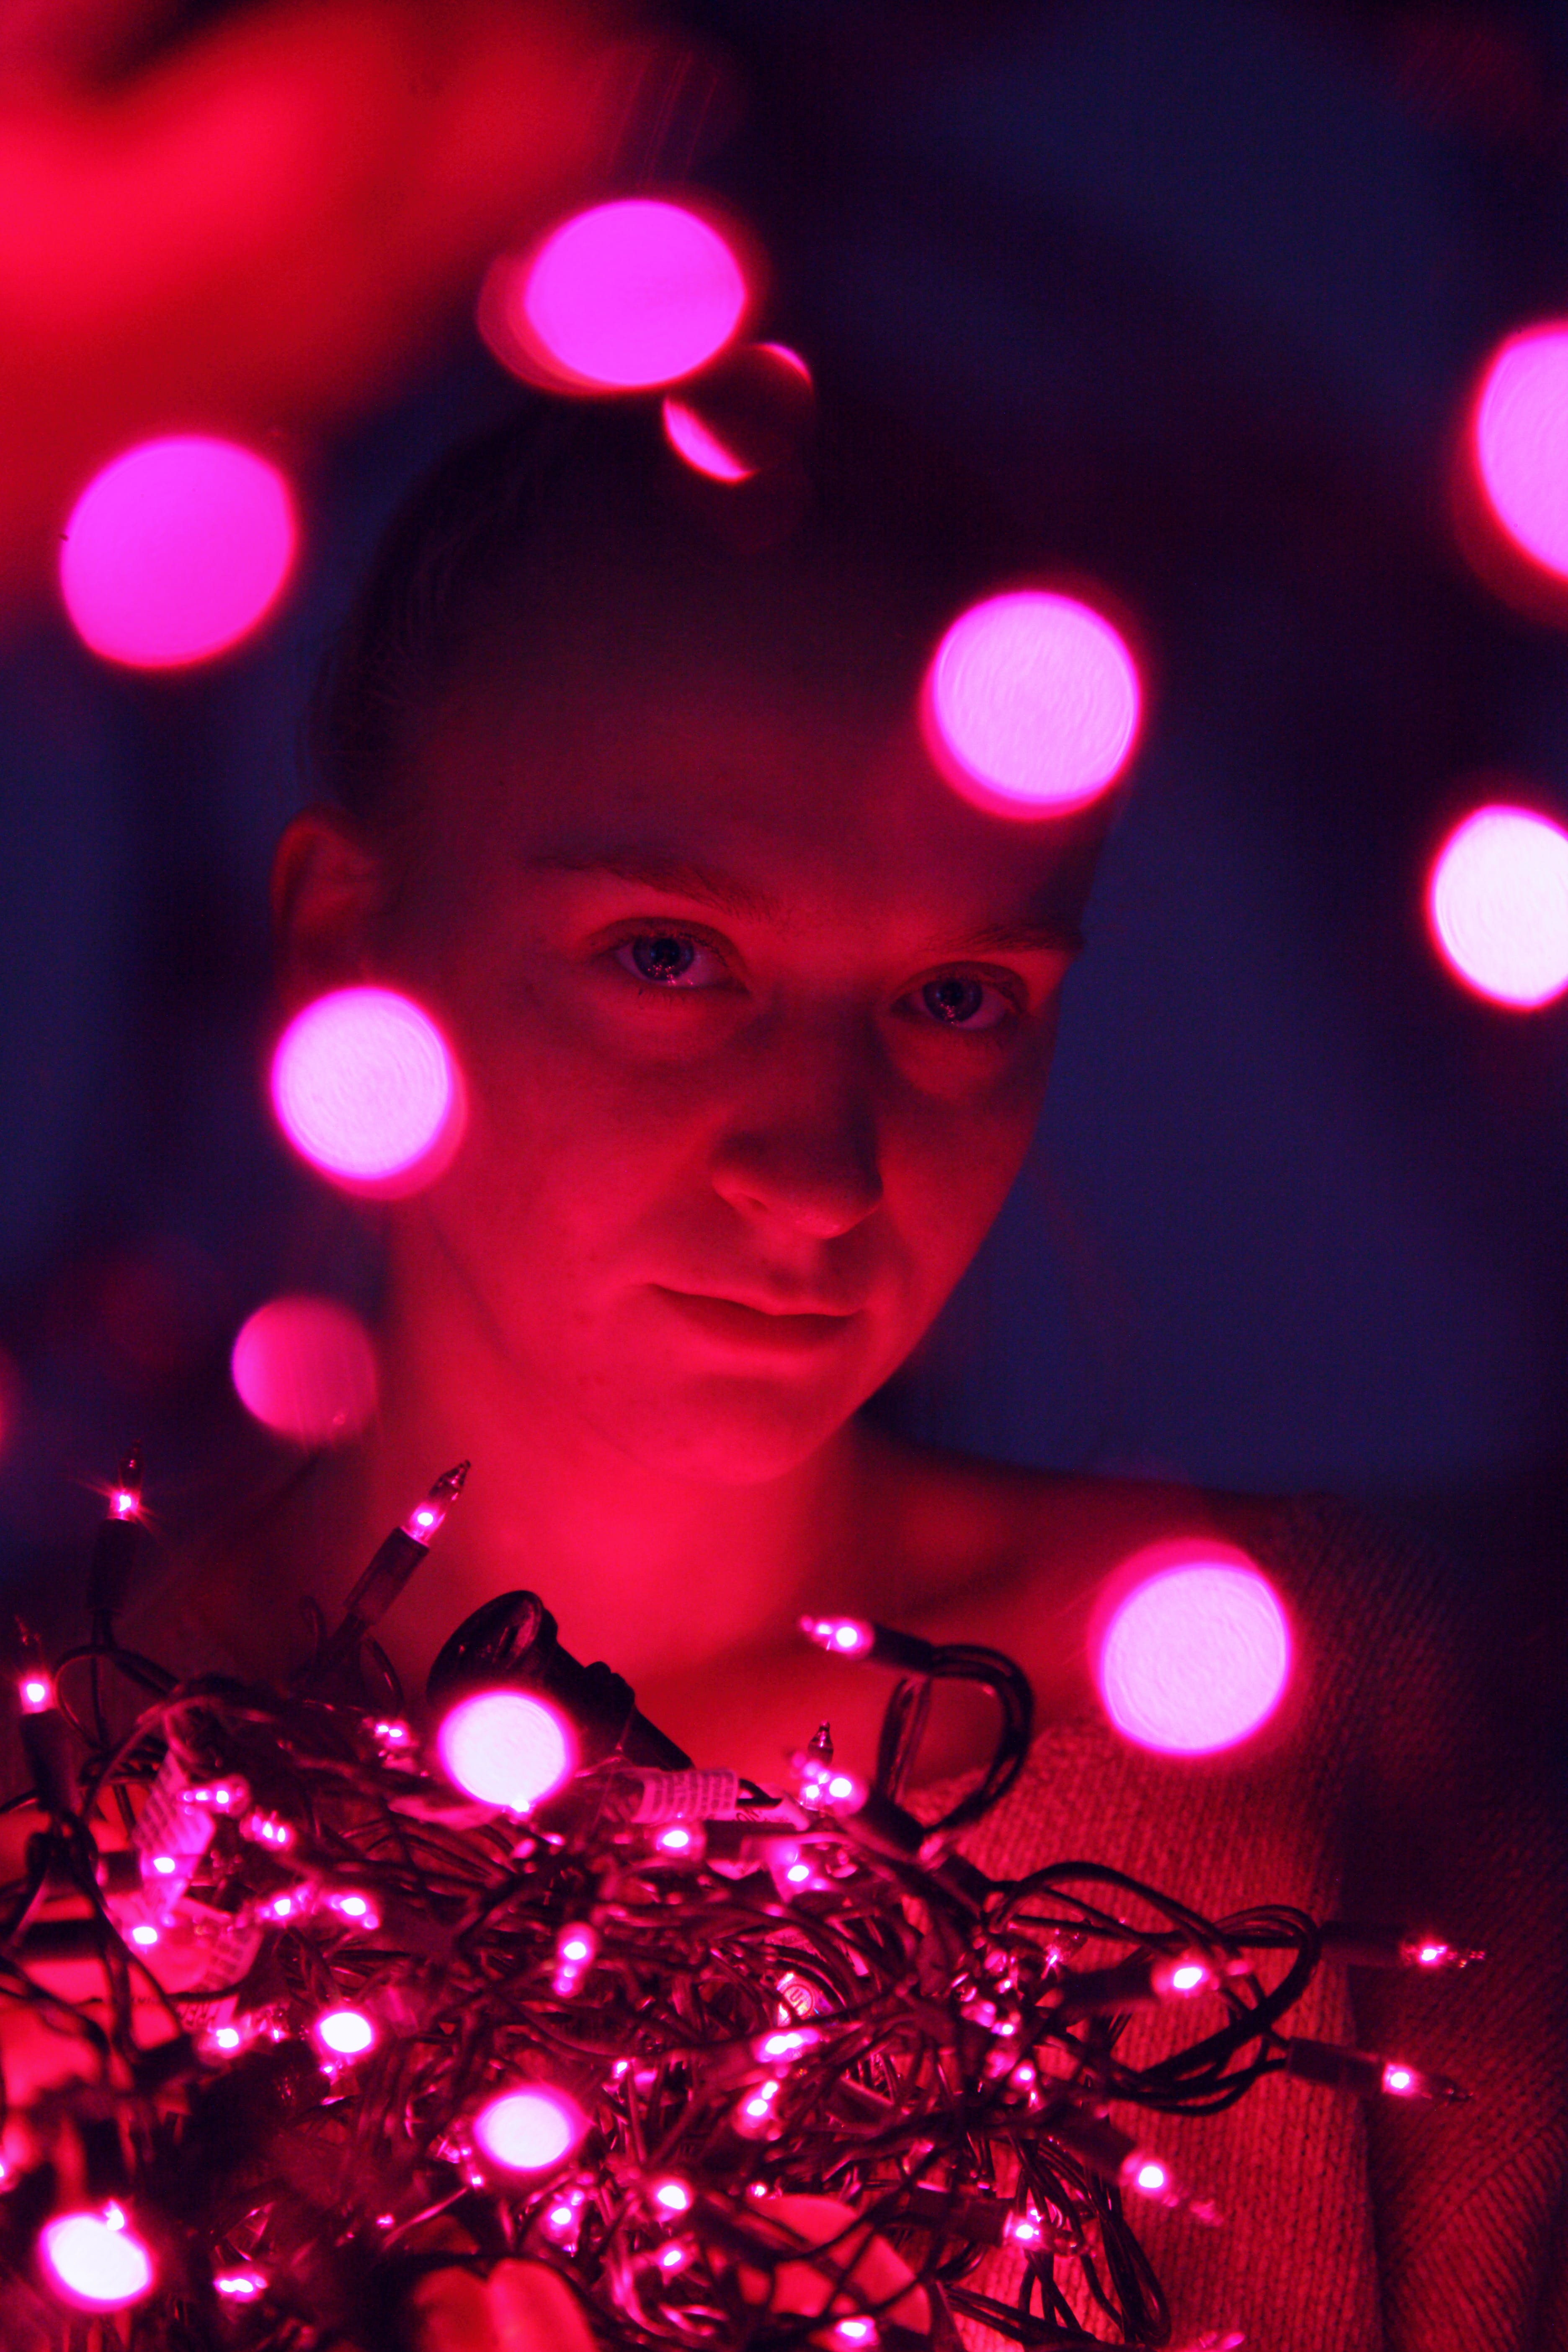 Bokeh Photography of Person